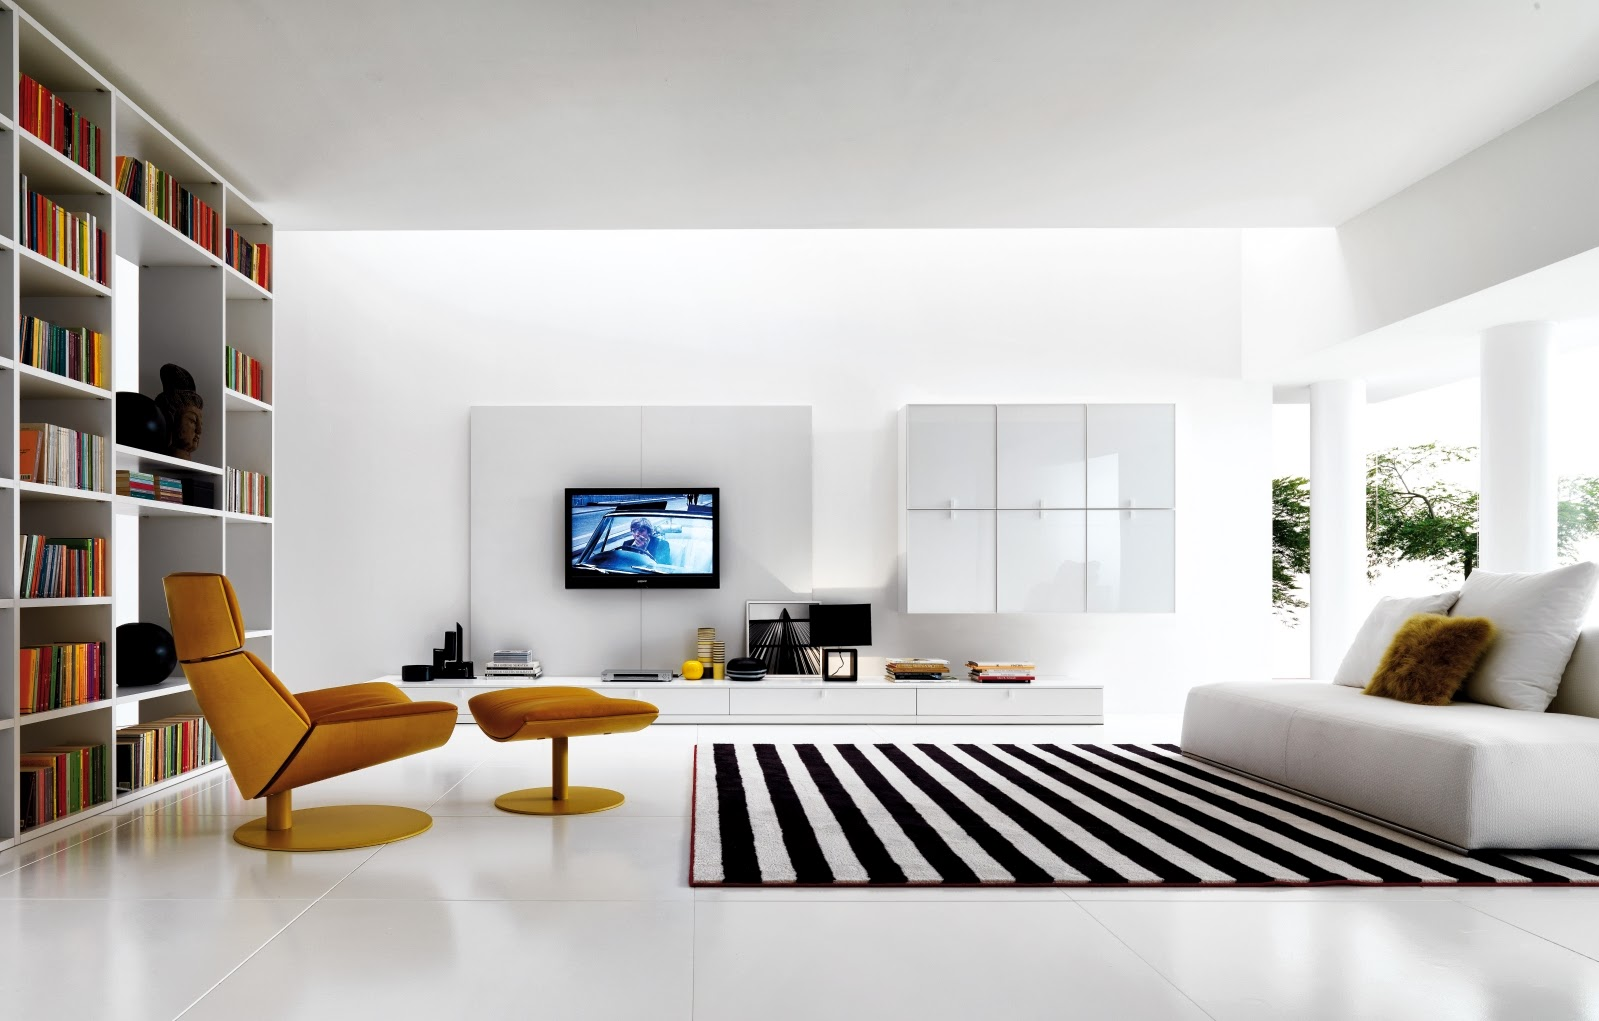 Characteristics of Contemporary Home Interior Design - Kataak